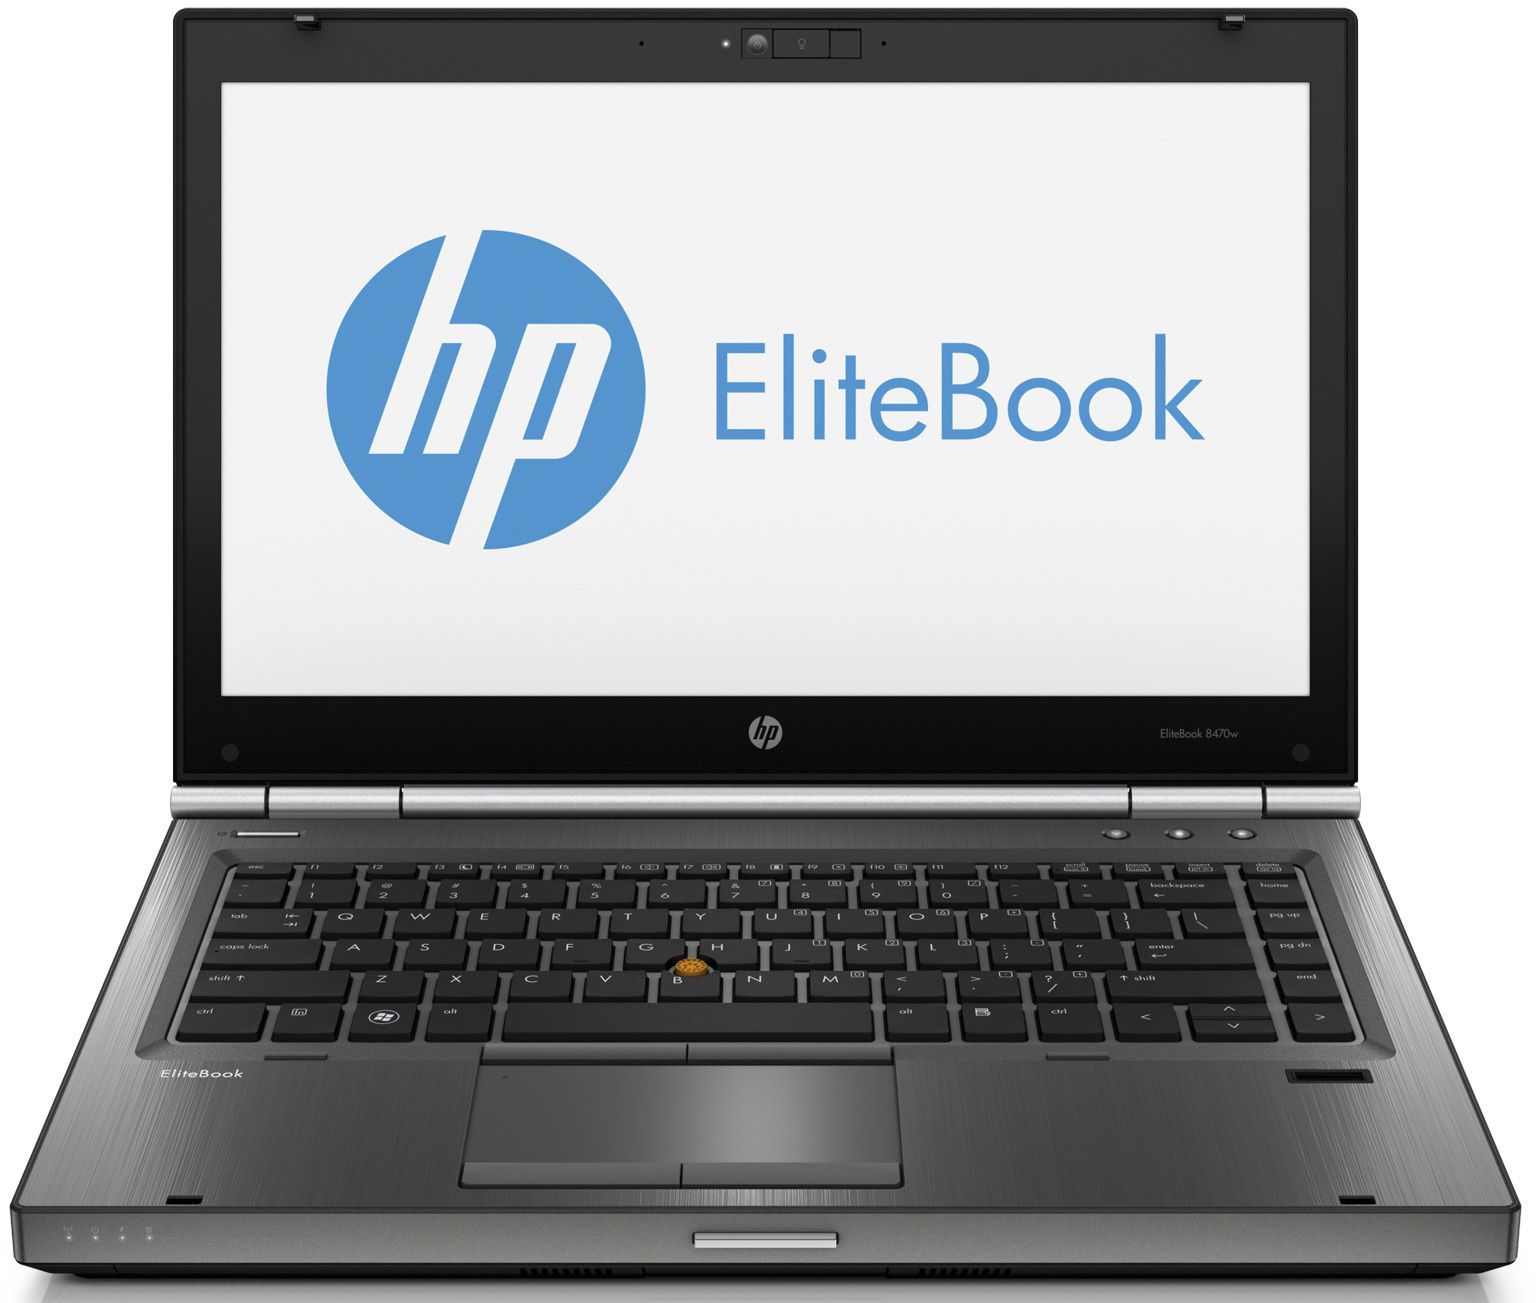 HP Elitebook 9470m (DON23PA) Laptop (Core i5 3rd Gen/4 GB/500 GB 32 GB SSD/Windows 8) Price